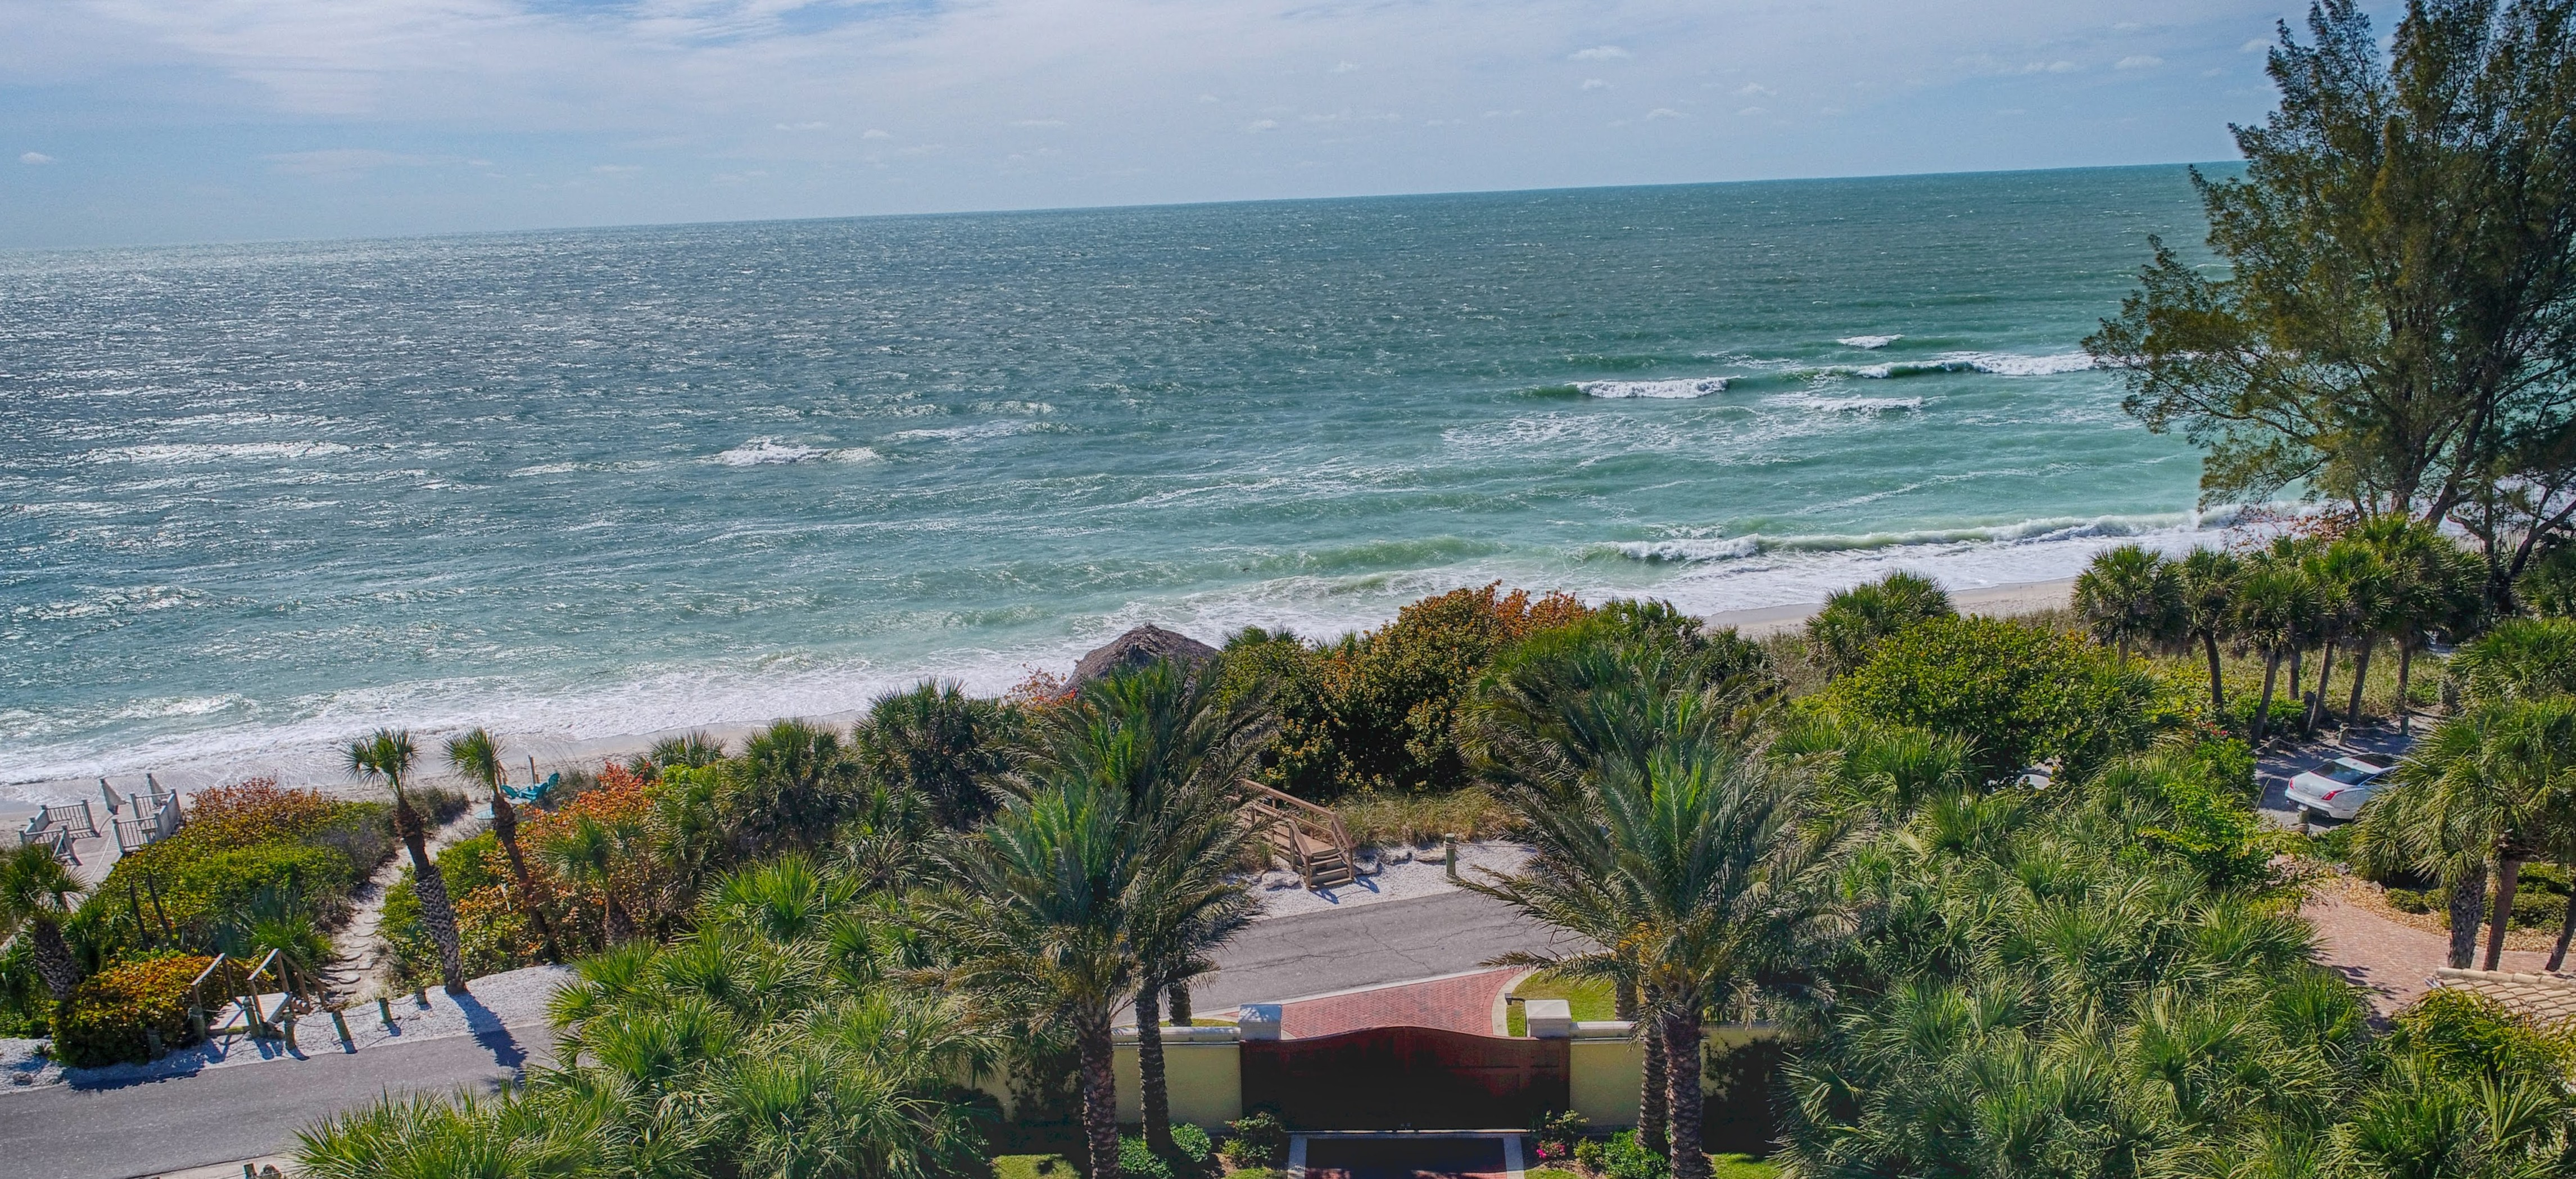 Sarasota, Fort Myers, Tampa, Orlando Surveying and Mapping for Beaches and Harbors